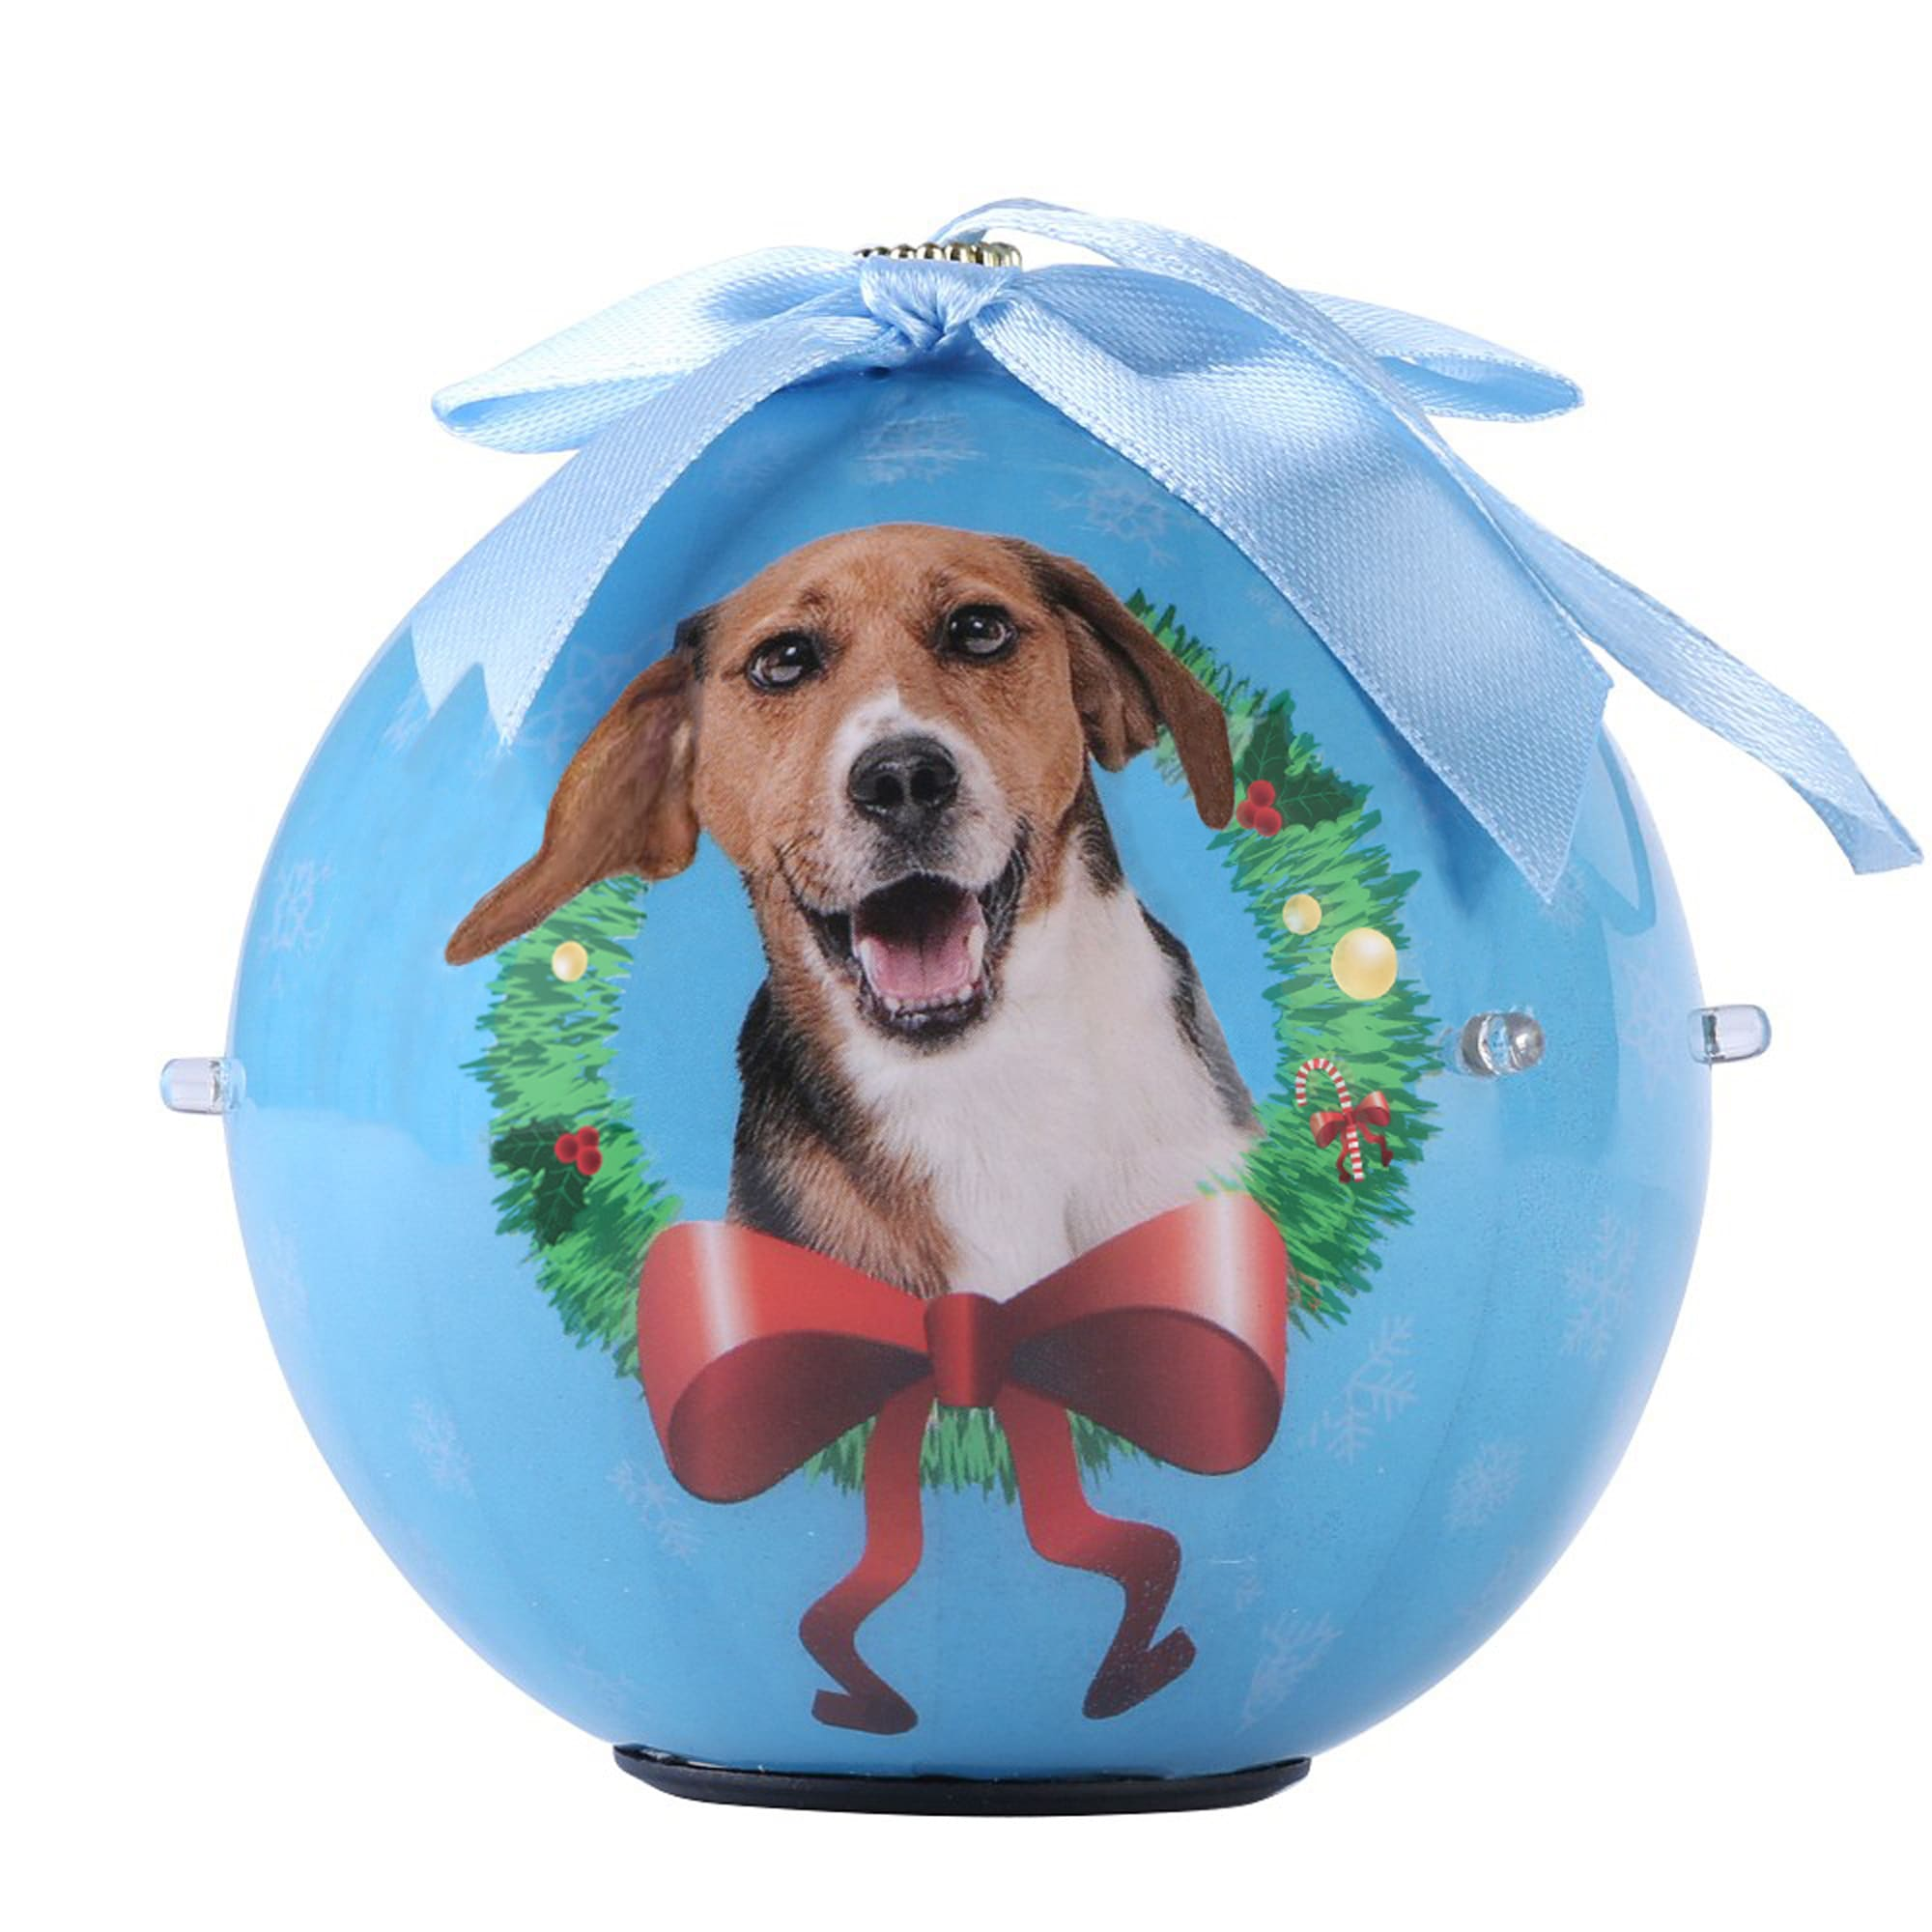 CueCuePet Beagle Dog Collection Twinkling Lights Christmas Ball Ornament, Medium, Blue